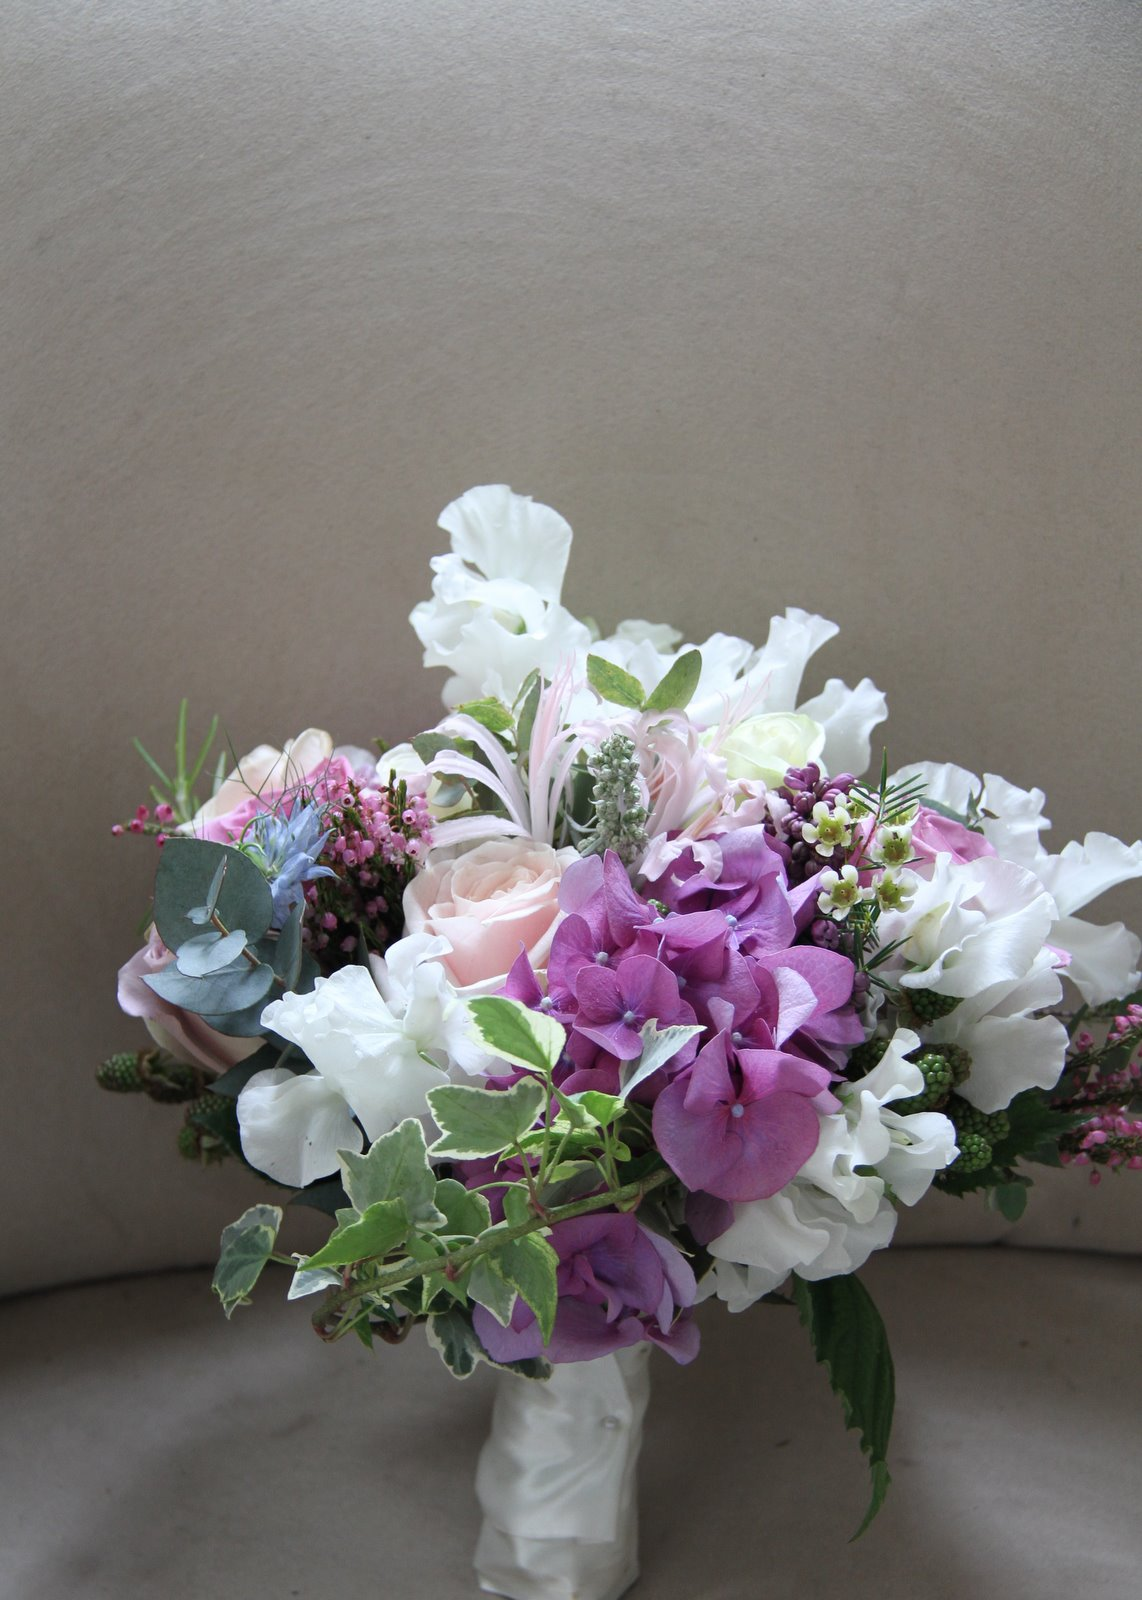 Used A Fabulous Combination Of Flowers To Create This Wedding